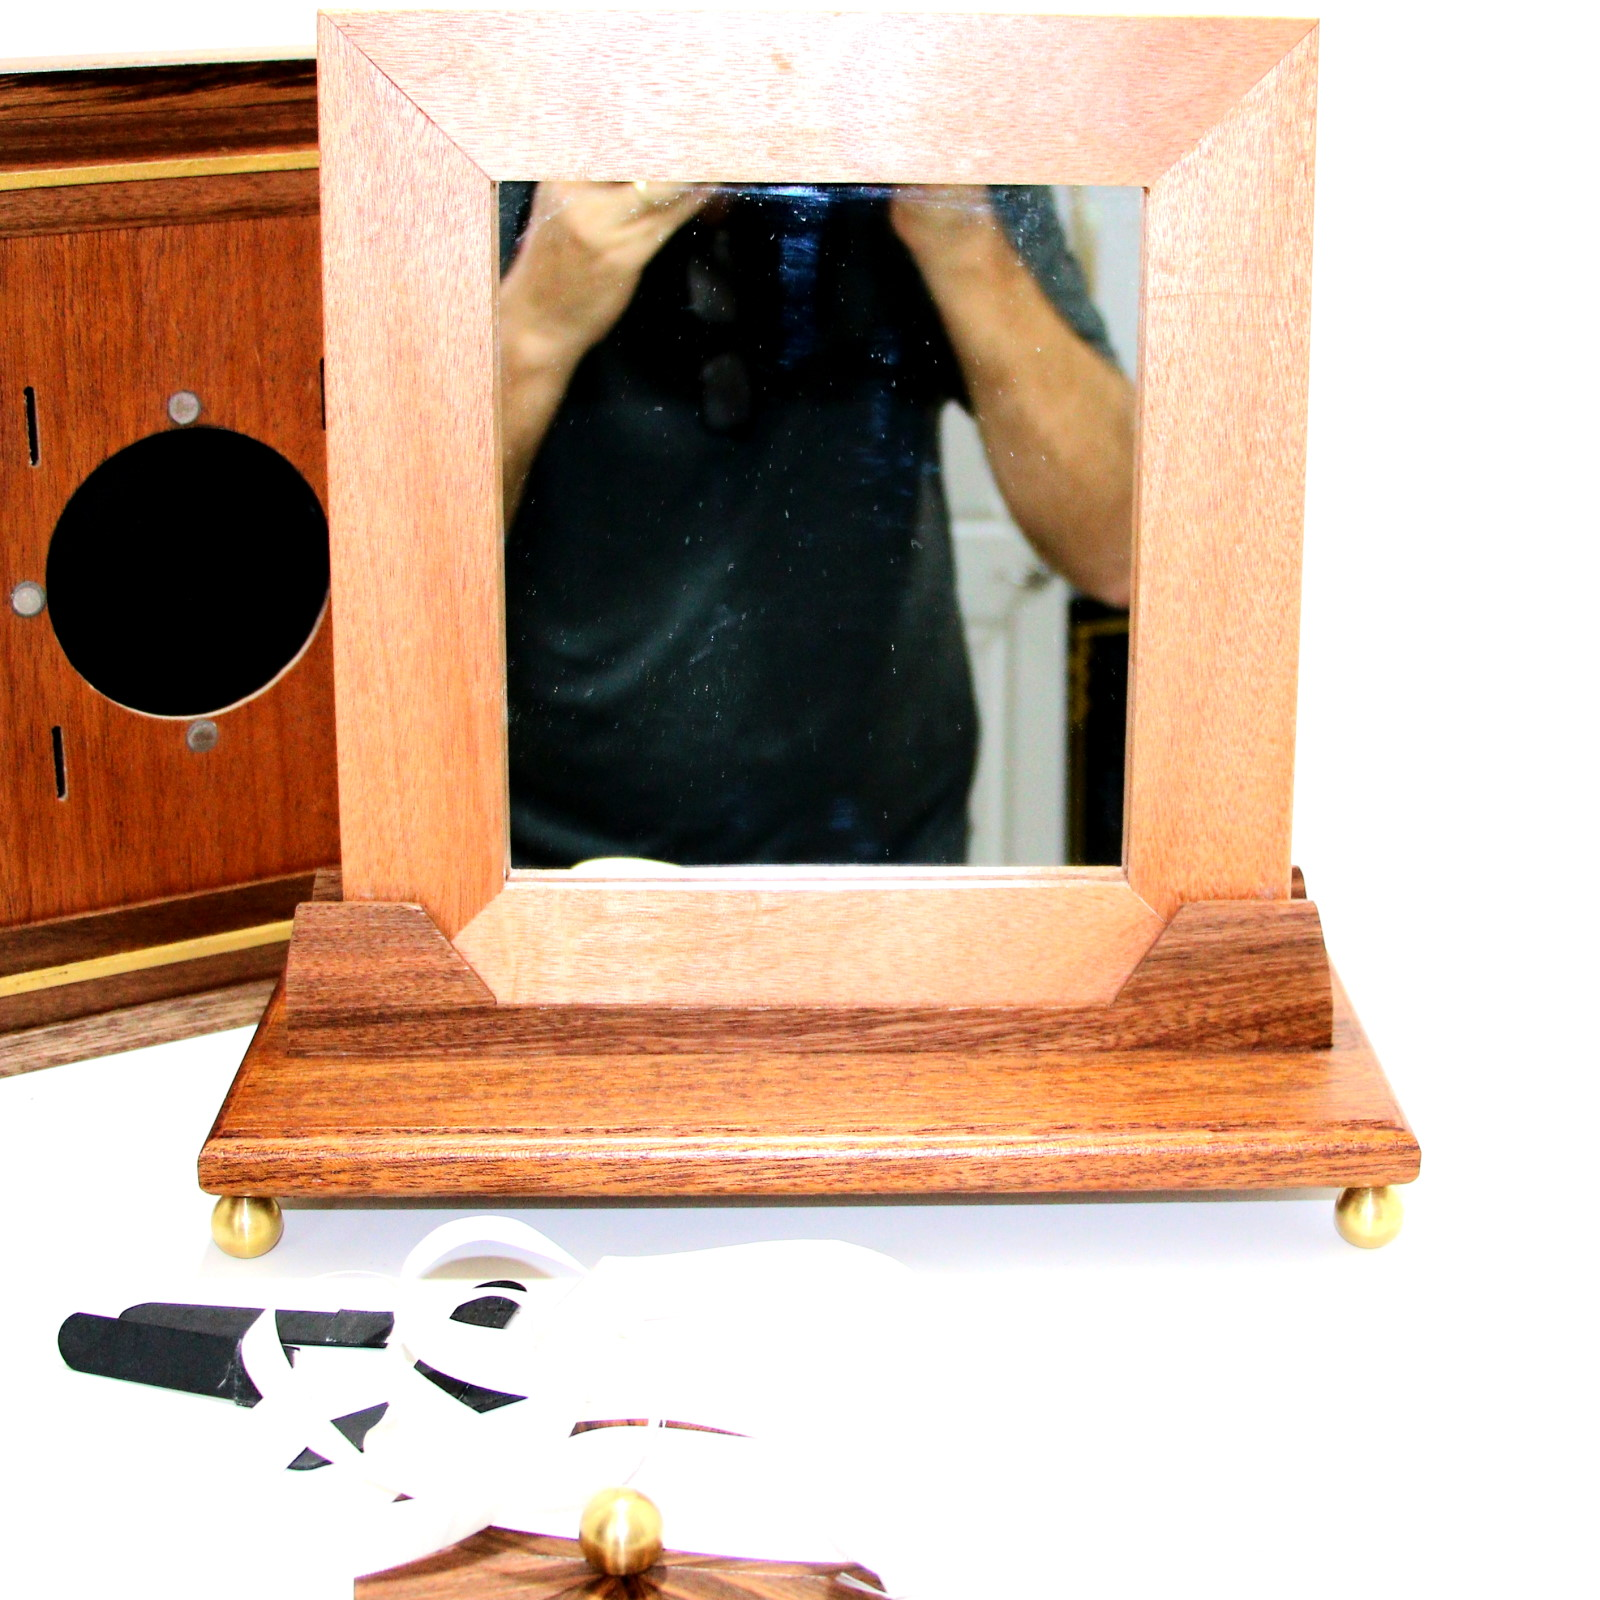 Magiros Miracle Mirror Penetration (Deluxe Hardwood) by Limited Edition Magic